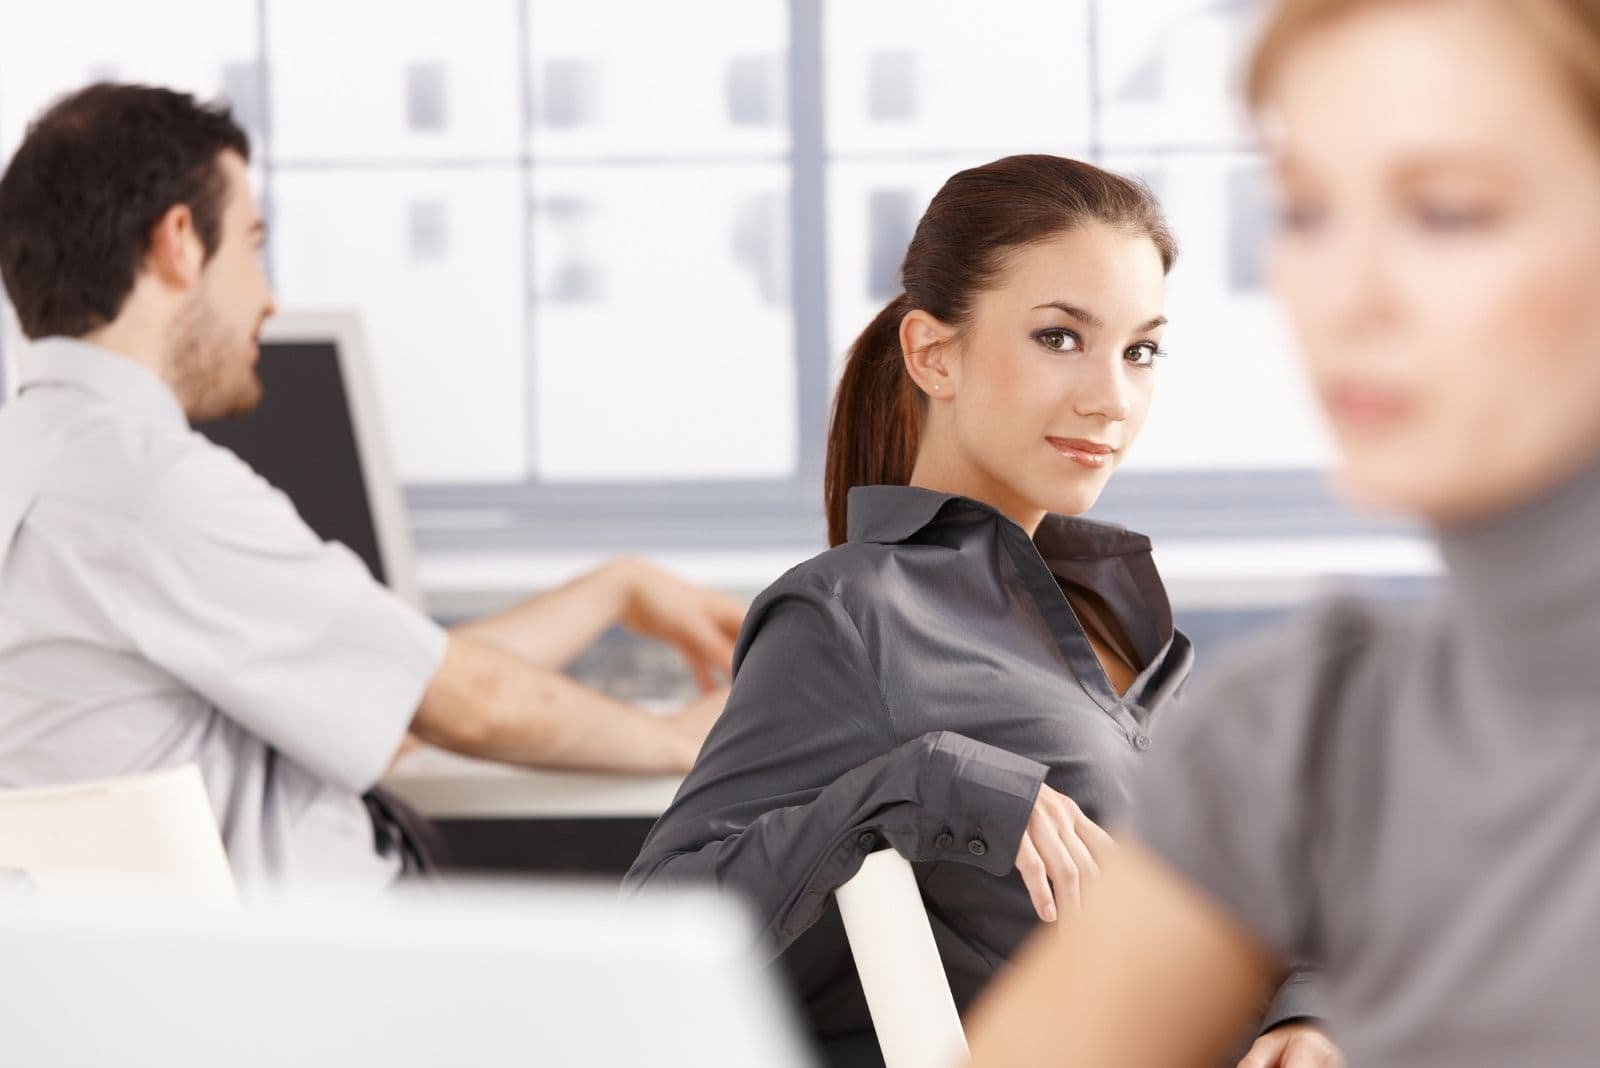 young people at office with focused on a woman smiling and looking at the camera